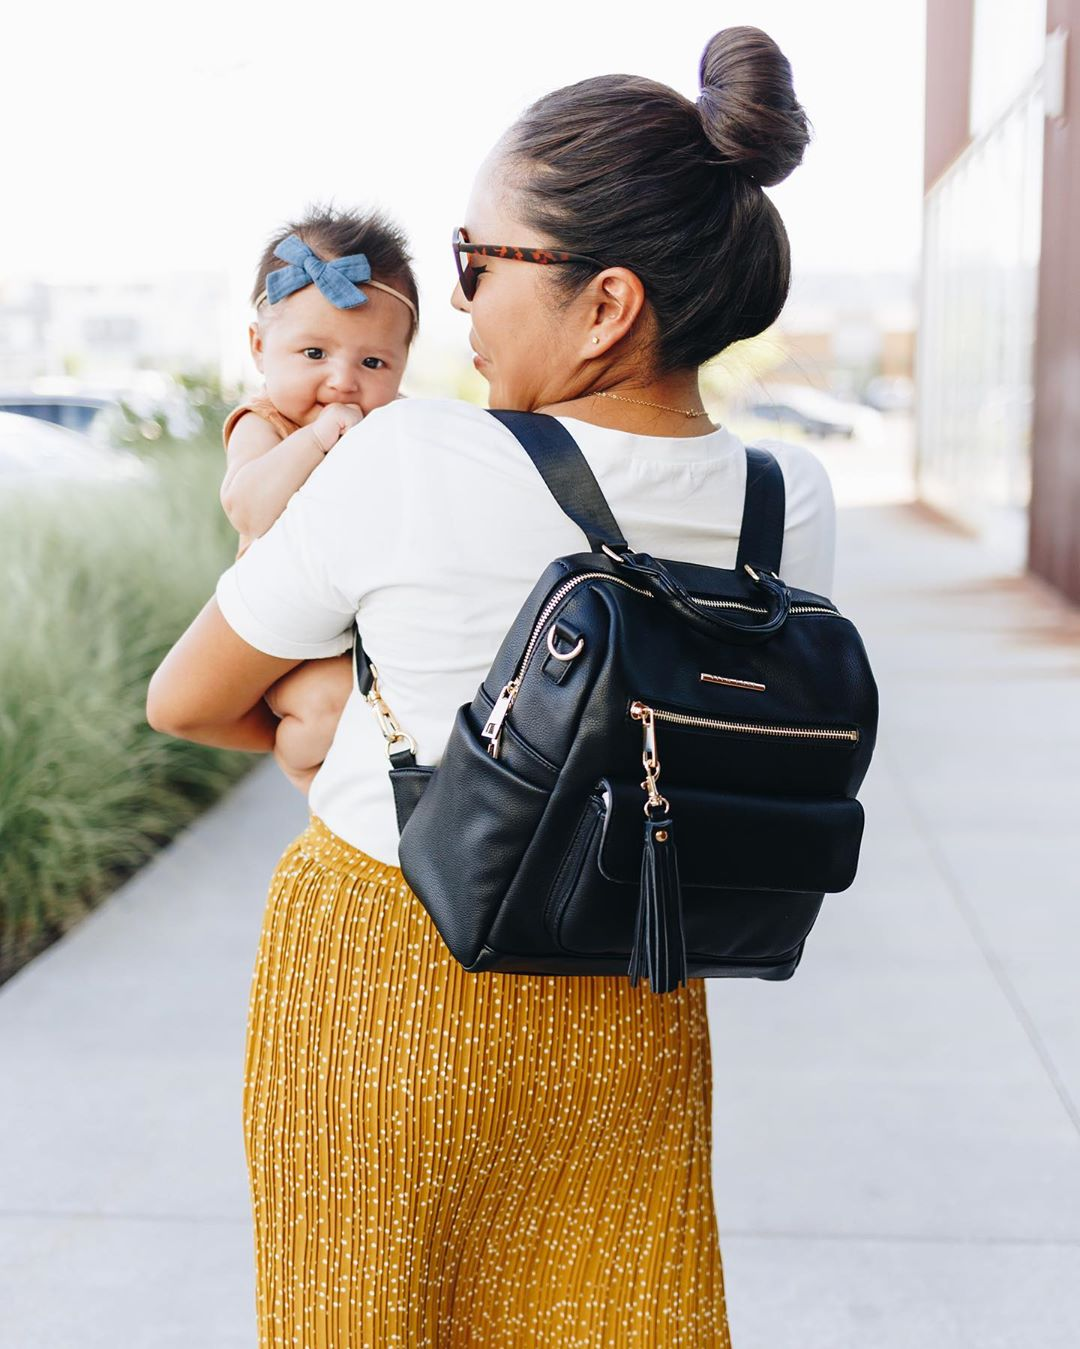 How To Choose A Diaper Bag - Your Starter Guide